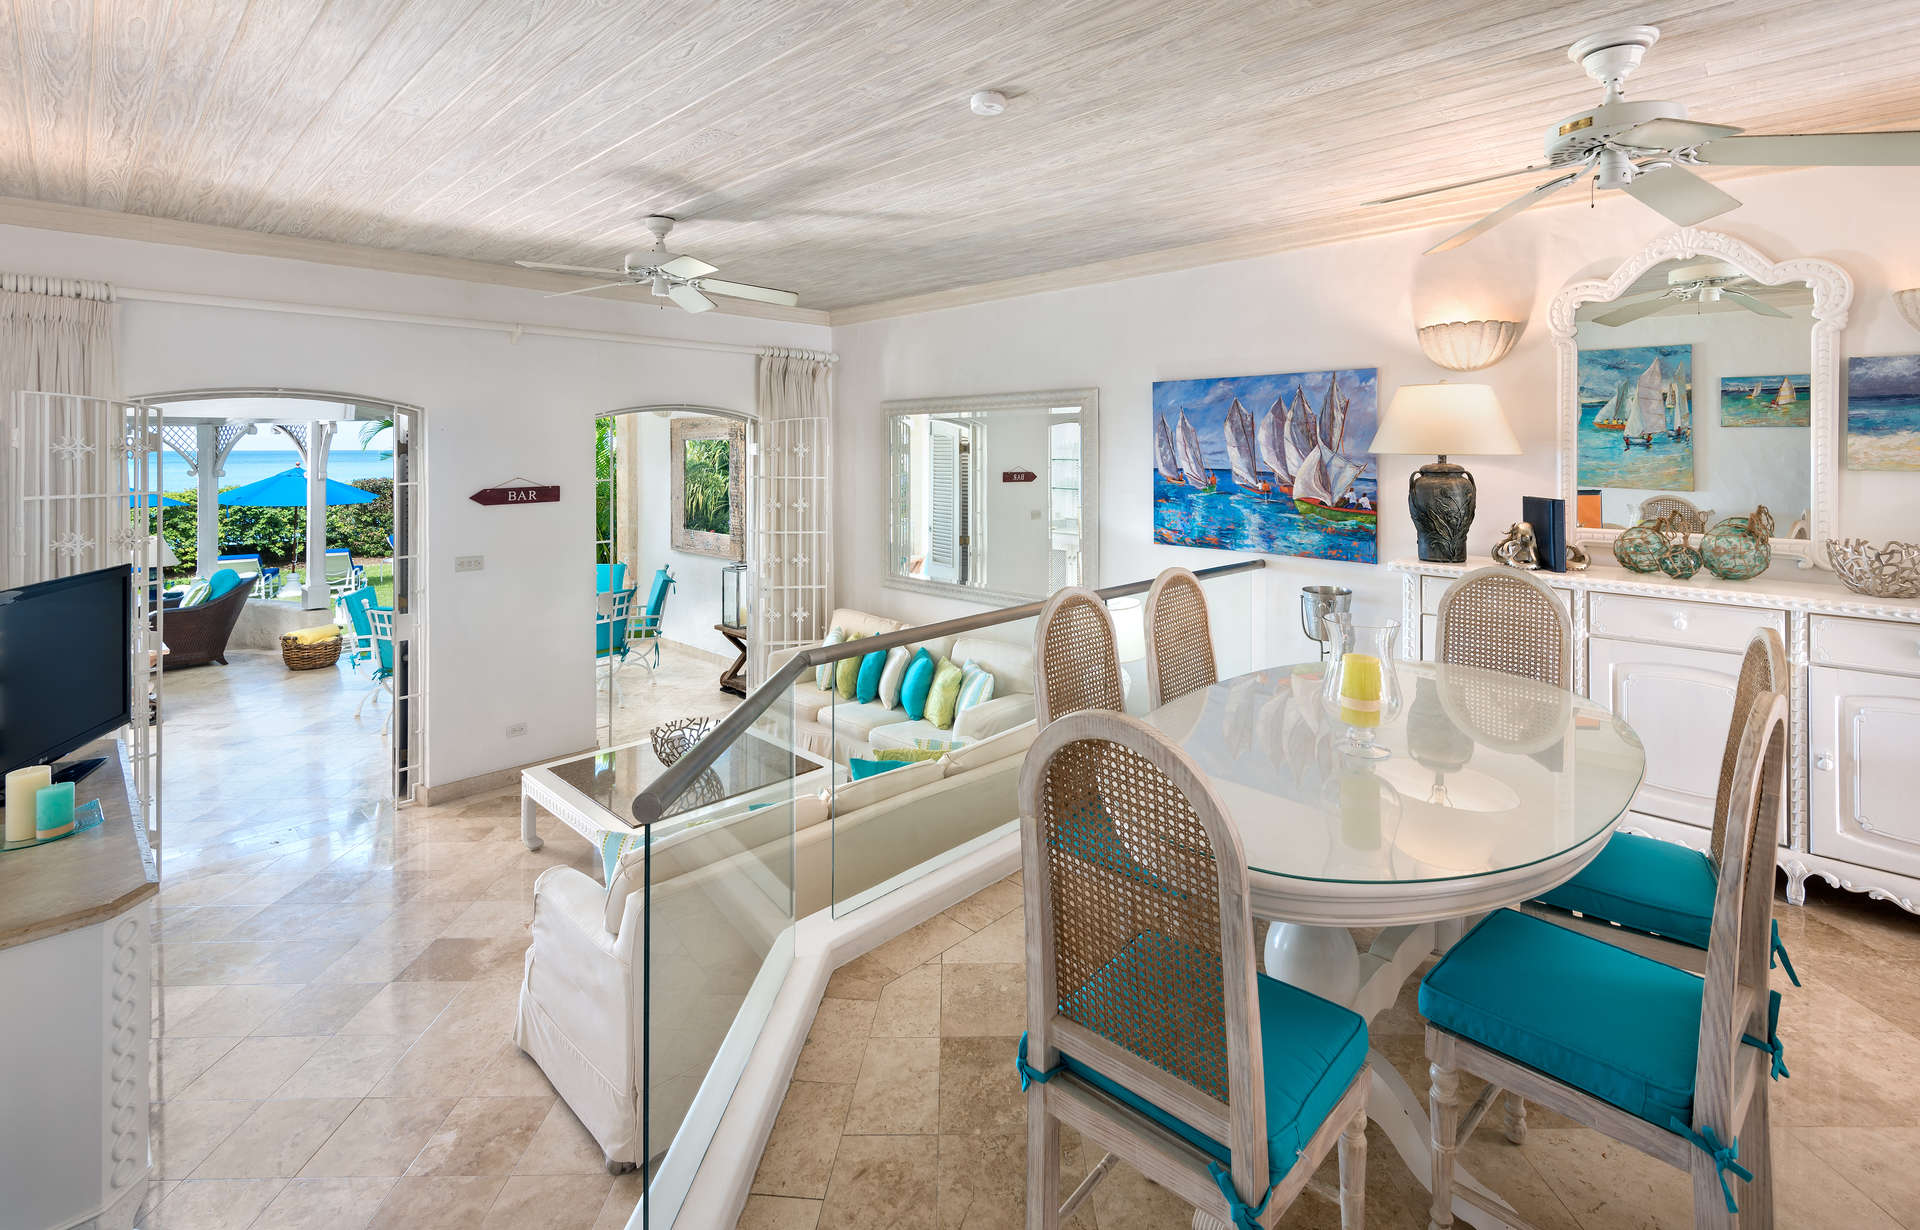 Luxury villa rentals caribbean - Barbados - St peter - Gibbes - Emerald Beach 6 | Cassia - Image 1/5